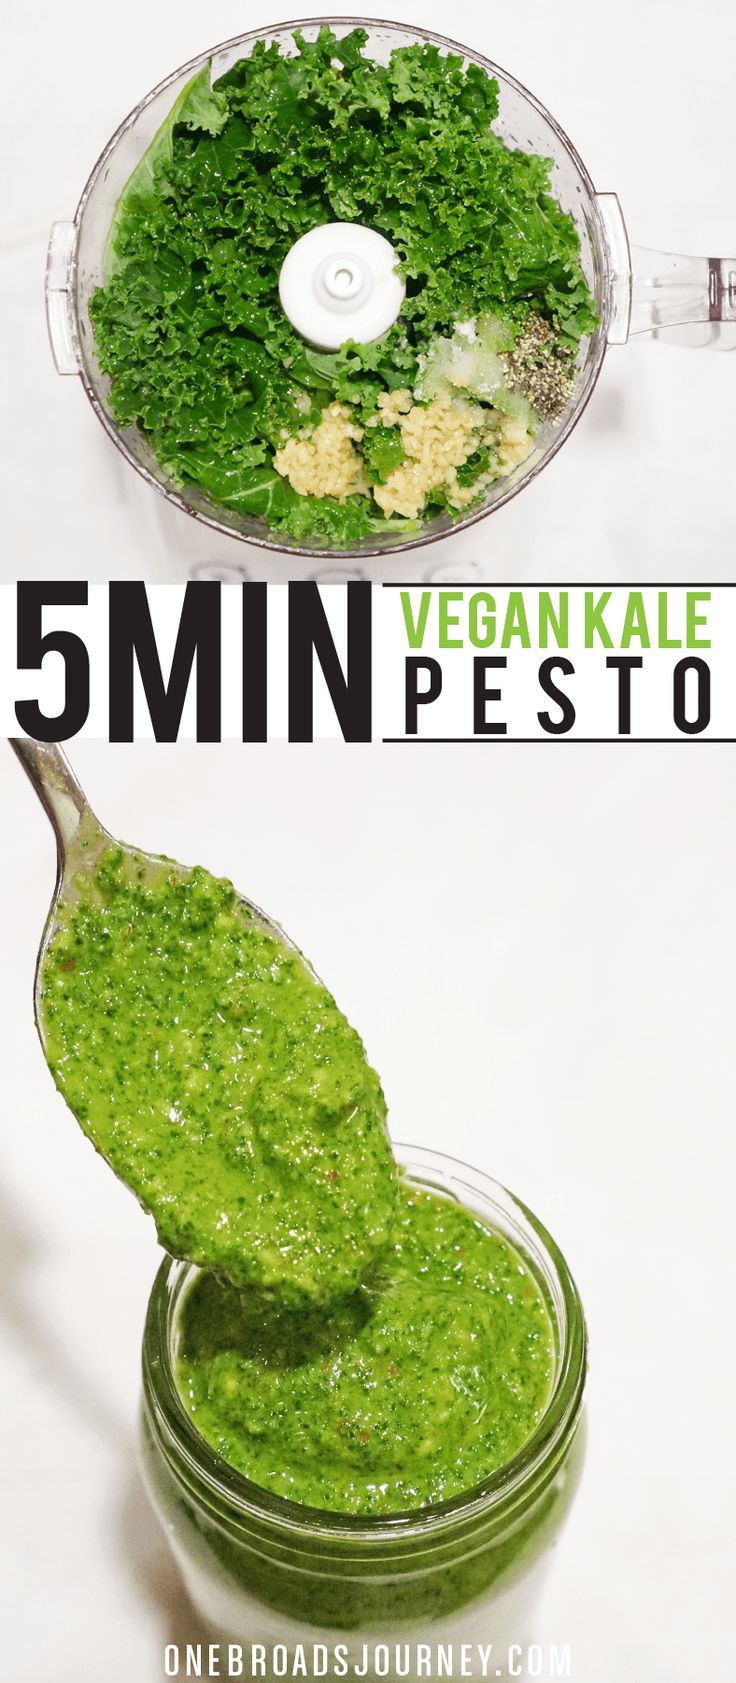 Quick Vegan Kale Pesto